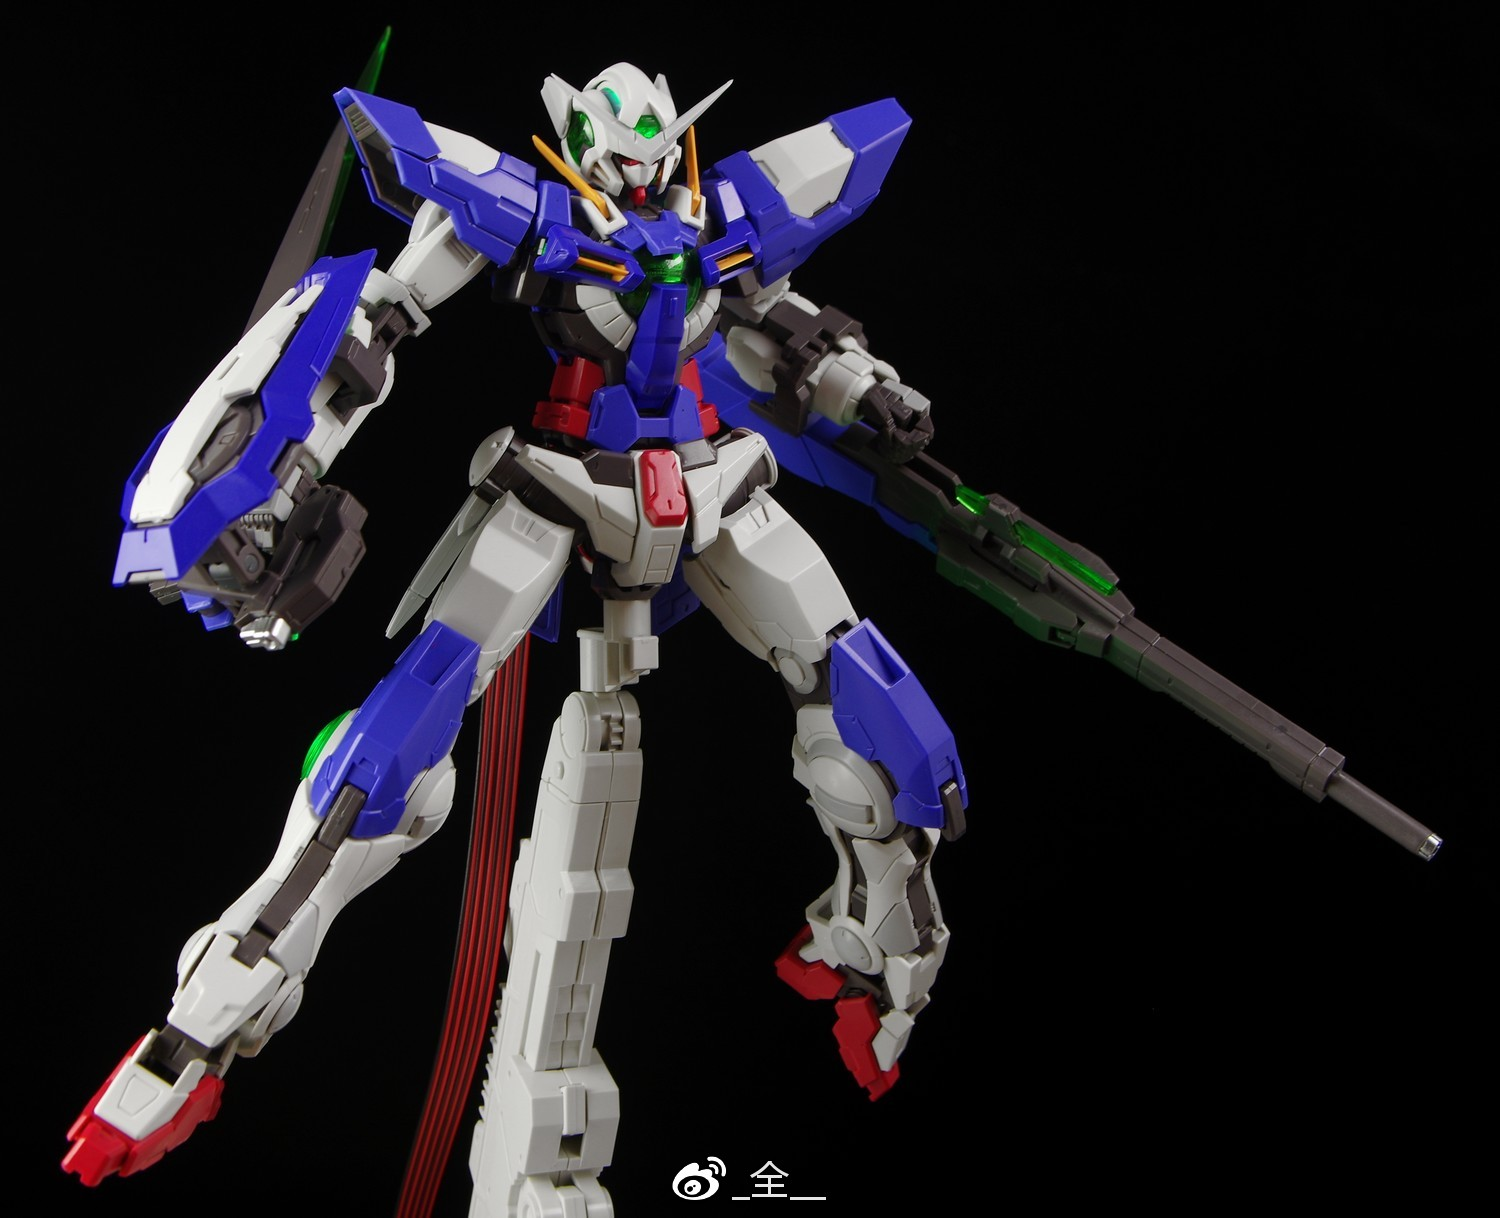 S269_mg_exia_led_hobby_star_inask_104.jpg